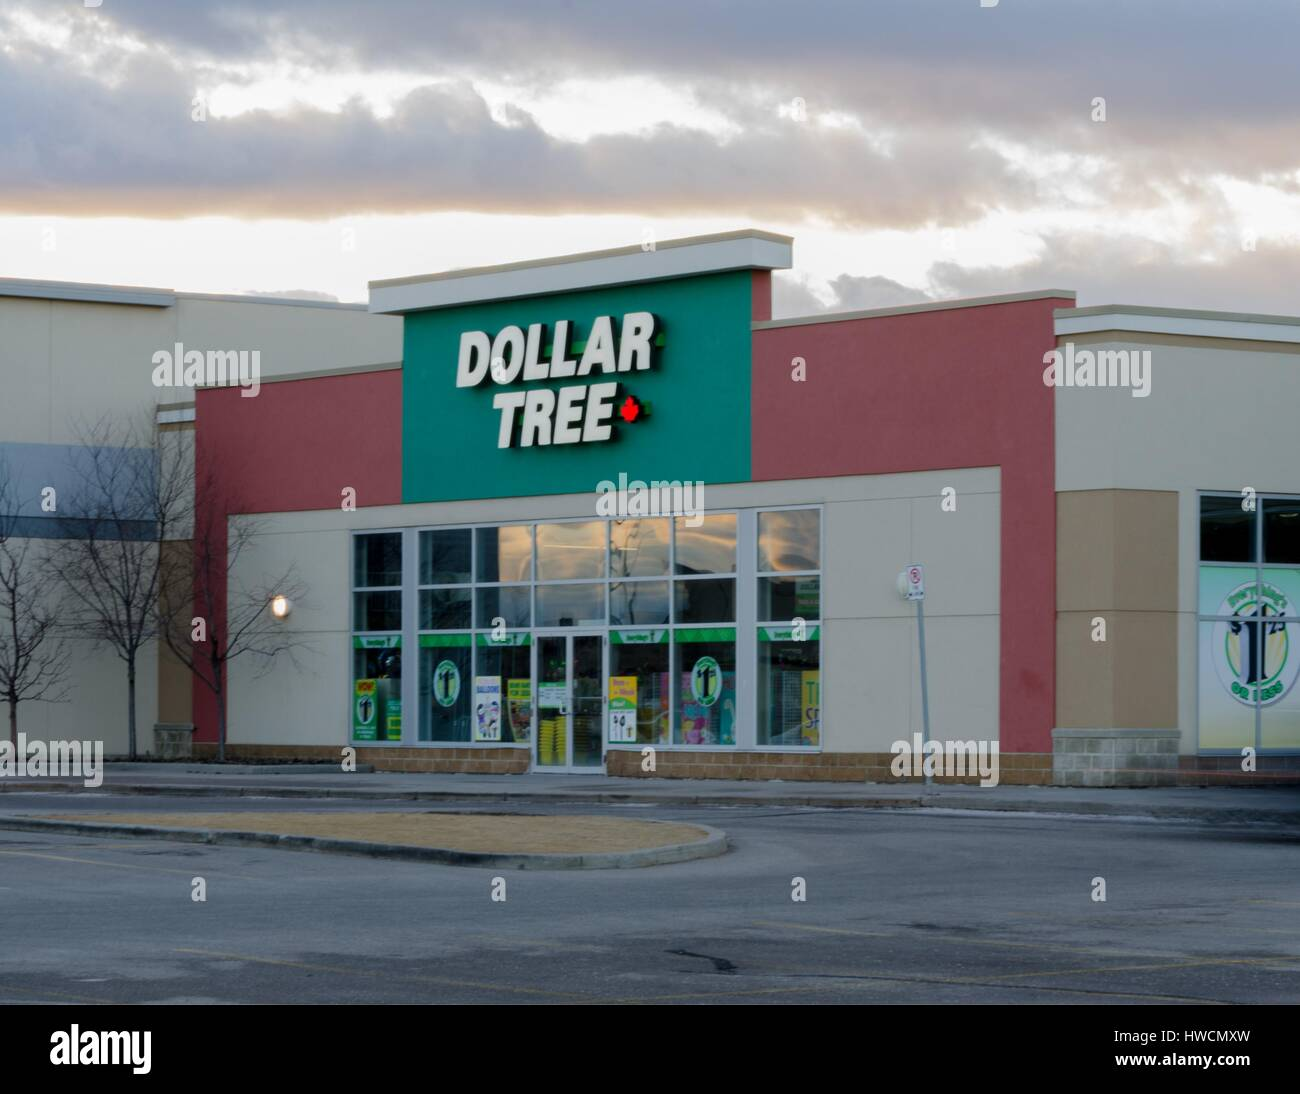 Dollar Tree Store Locator Inc: A Dollar Tree Retail Store In Calgary, Alberta, Canada